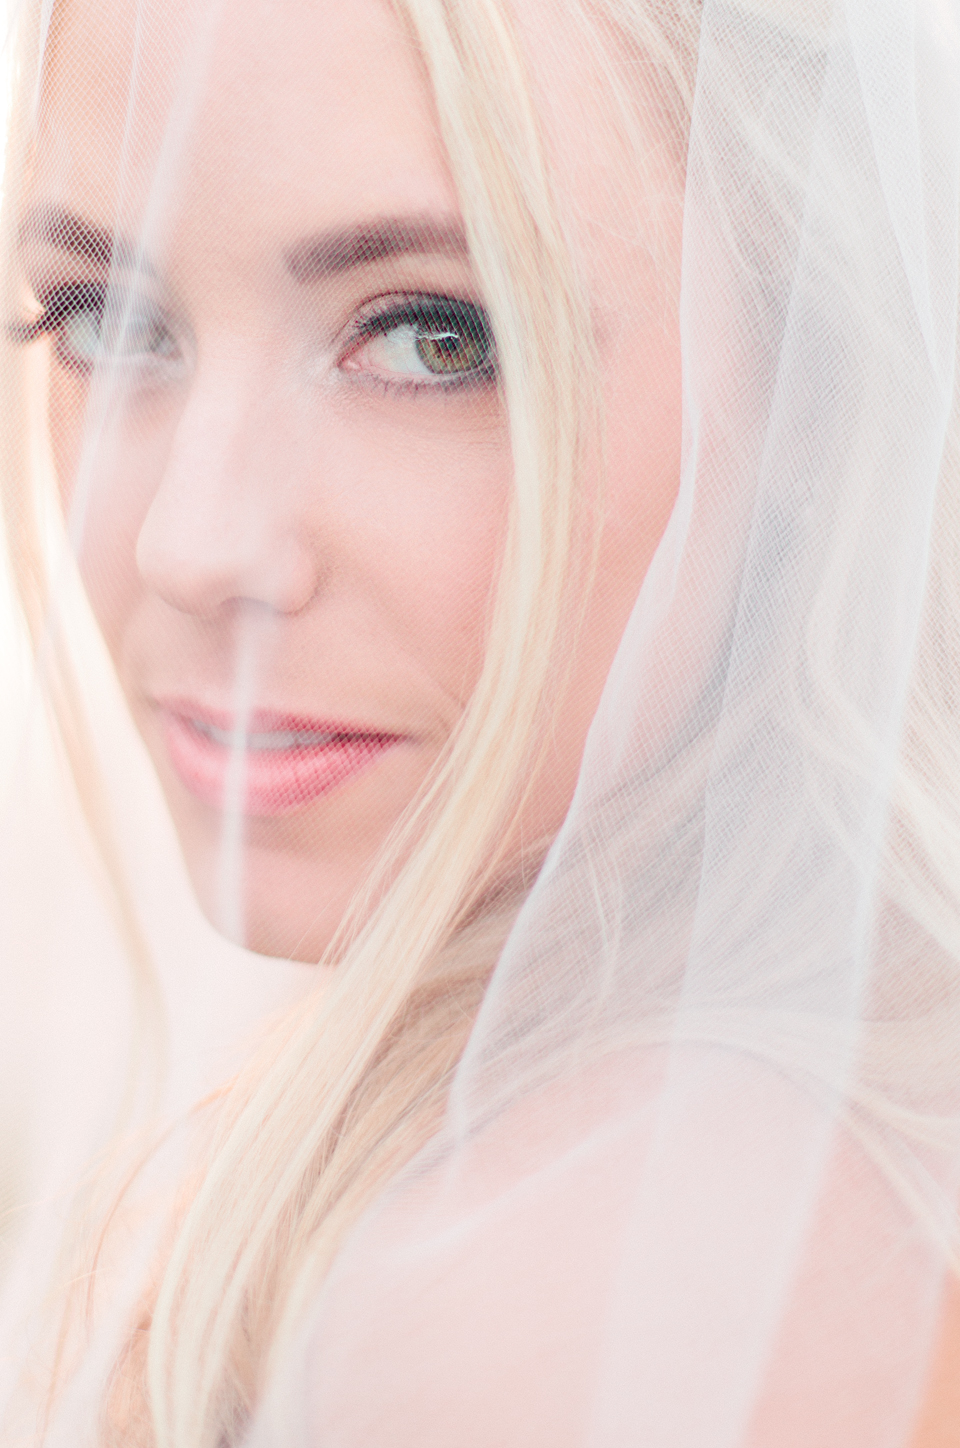 Picture of a bride under her veil on her wedding day at TPC Sawgrass in Ponte Vedra, Florida